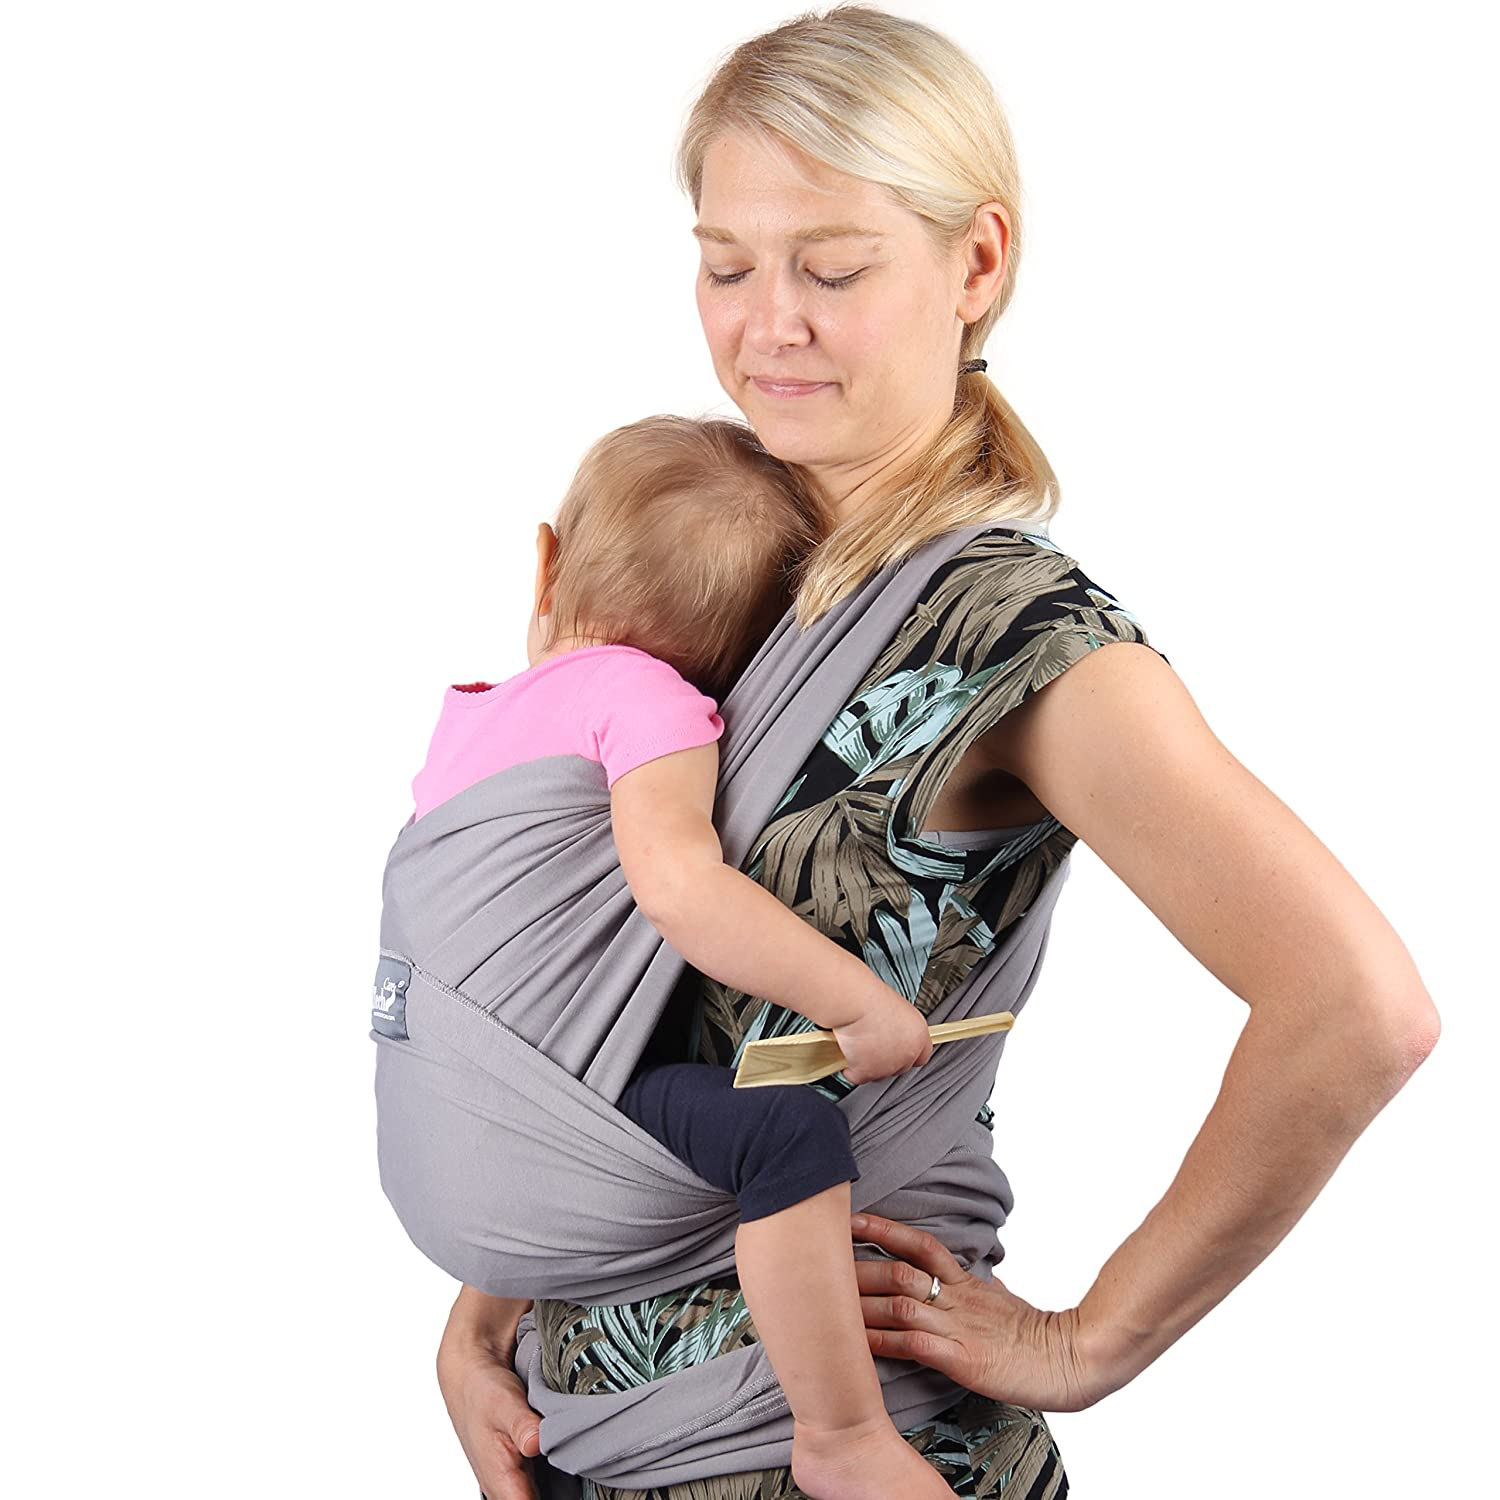 Toddler Child Cotton Neotech Care Baby Wrap Carrier Light Brown for Infant Newborn Breathable /& Adjustable